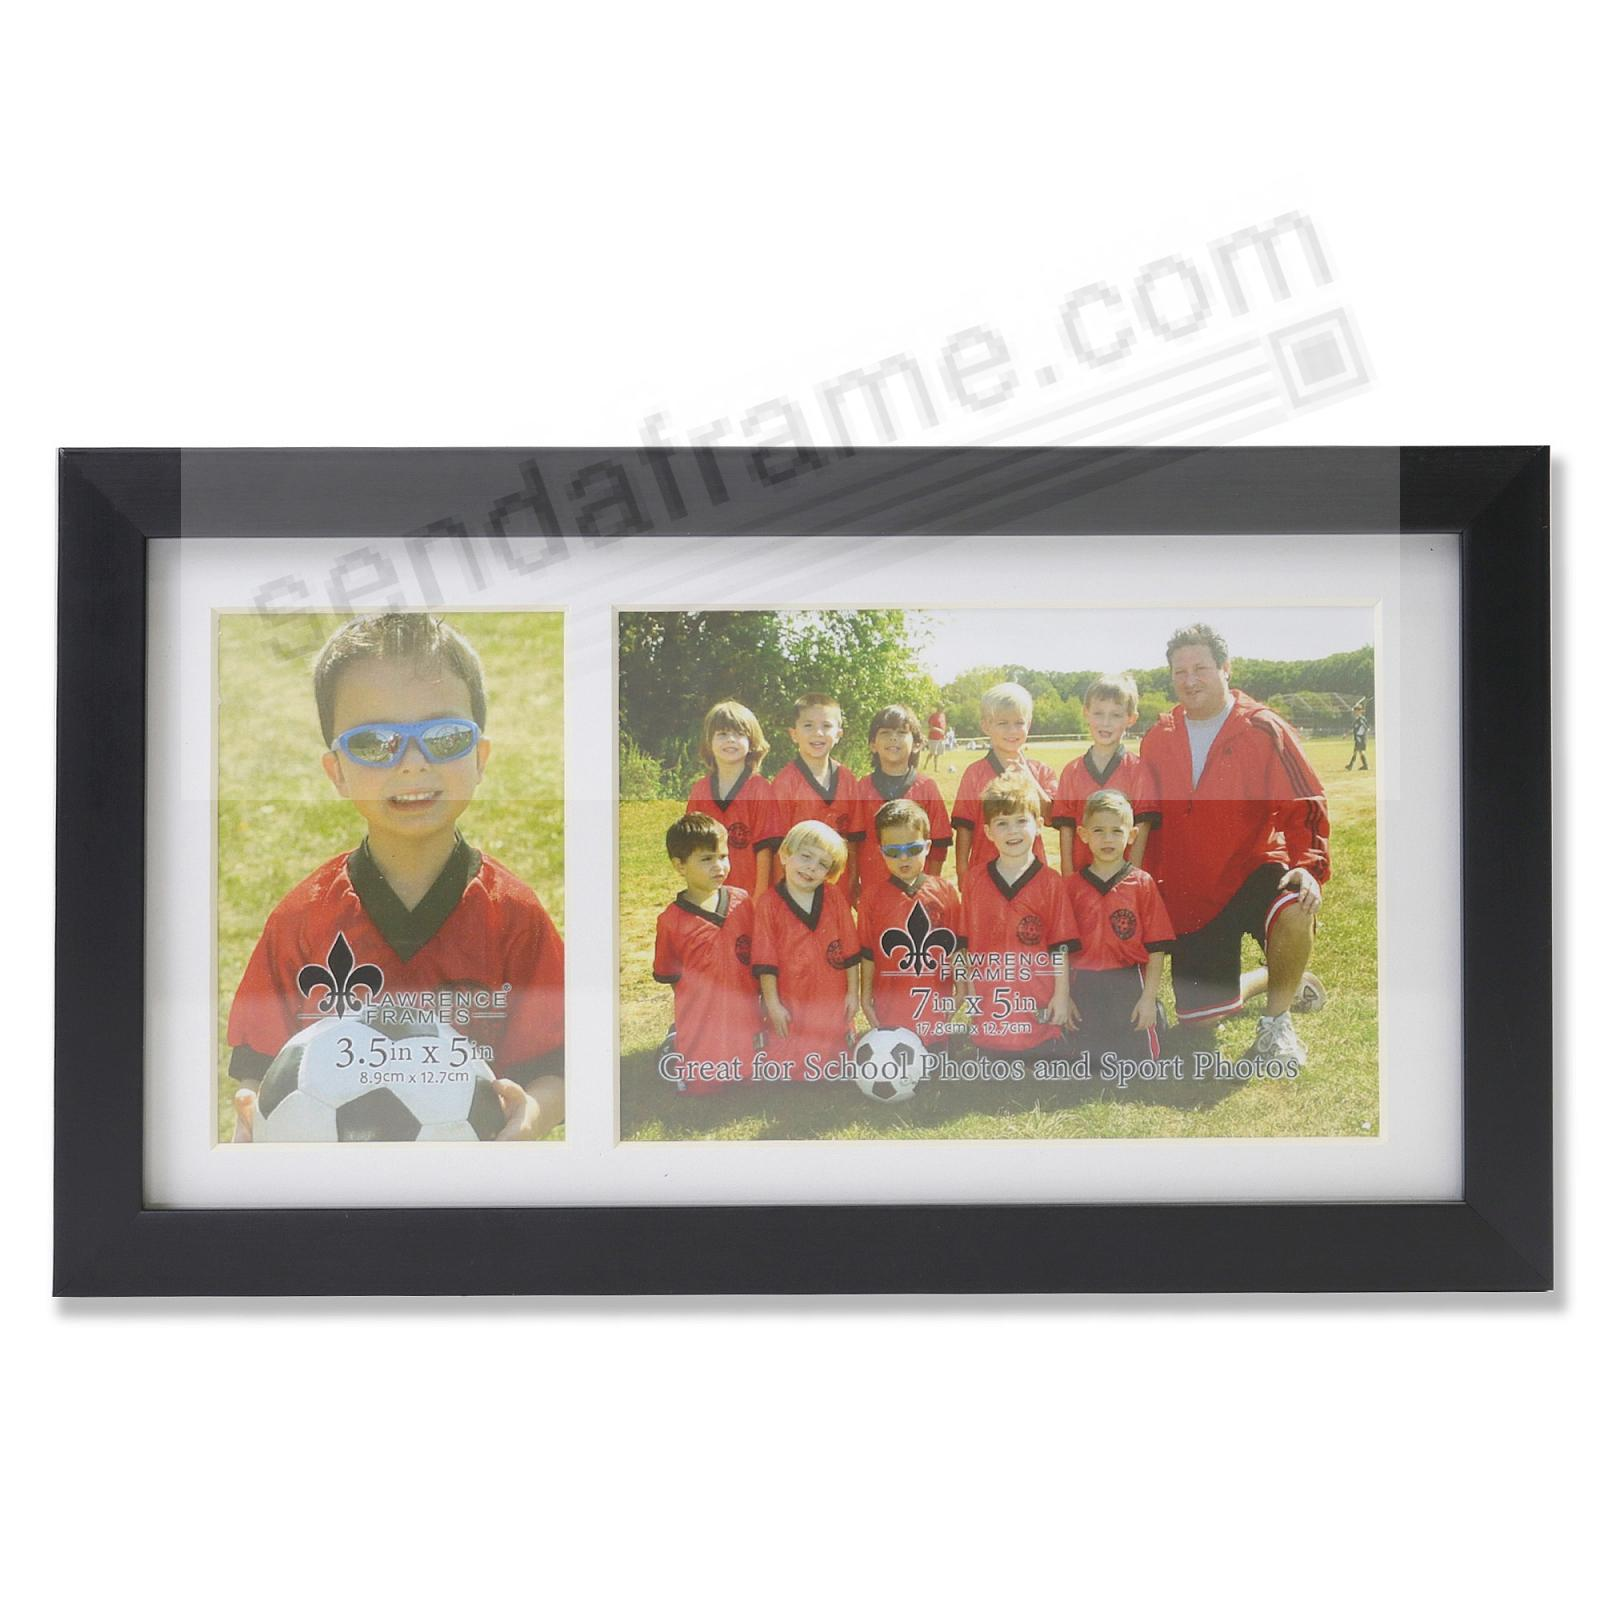 Our Team Black Collage frame 3½x5/7x5 instantly personalizes your group